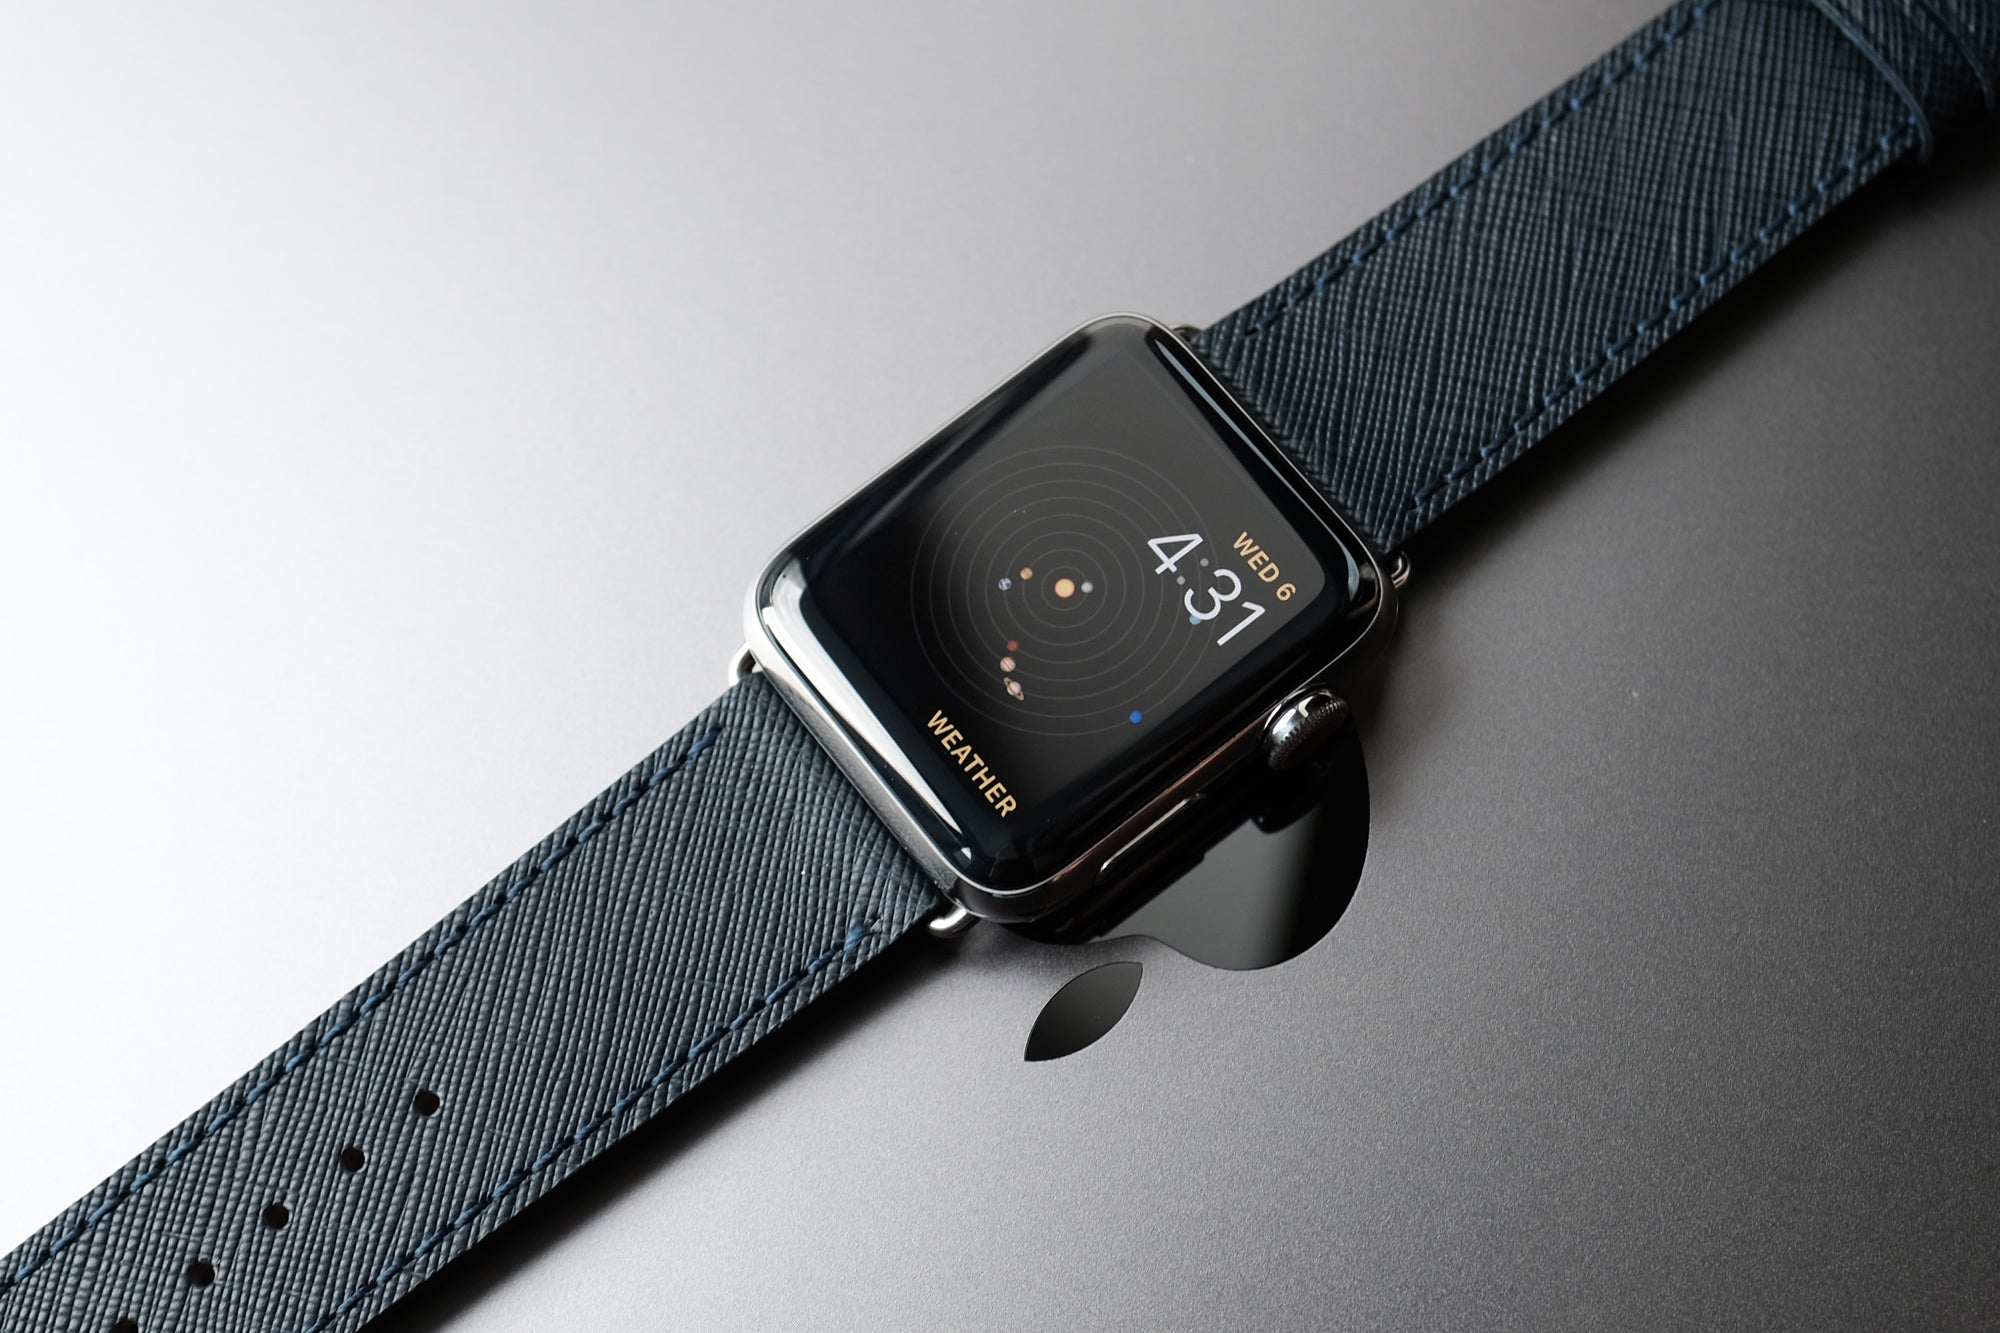 Pin and Buckle Apple Watch Bands - Saffiano - Textured Leather Apple Watch Bands - Navy Blue - 2